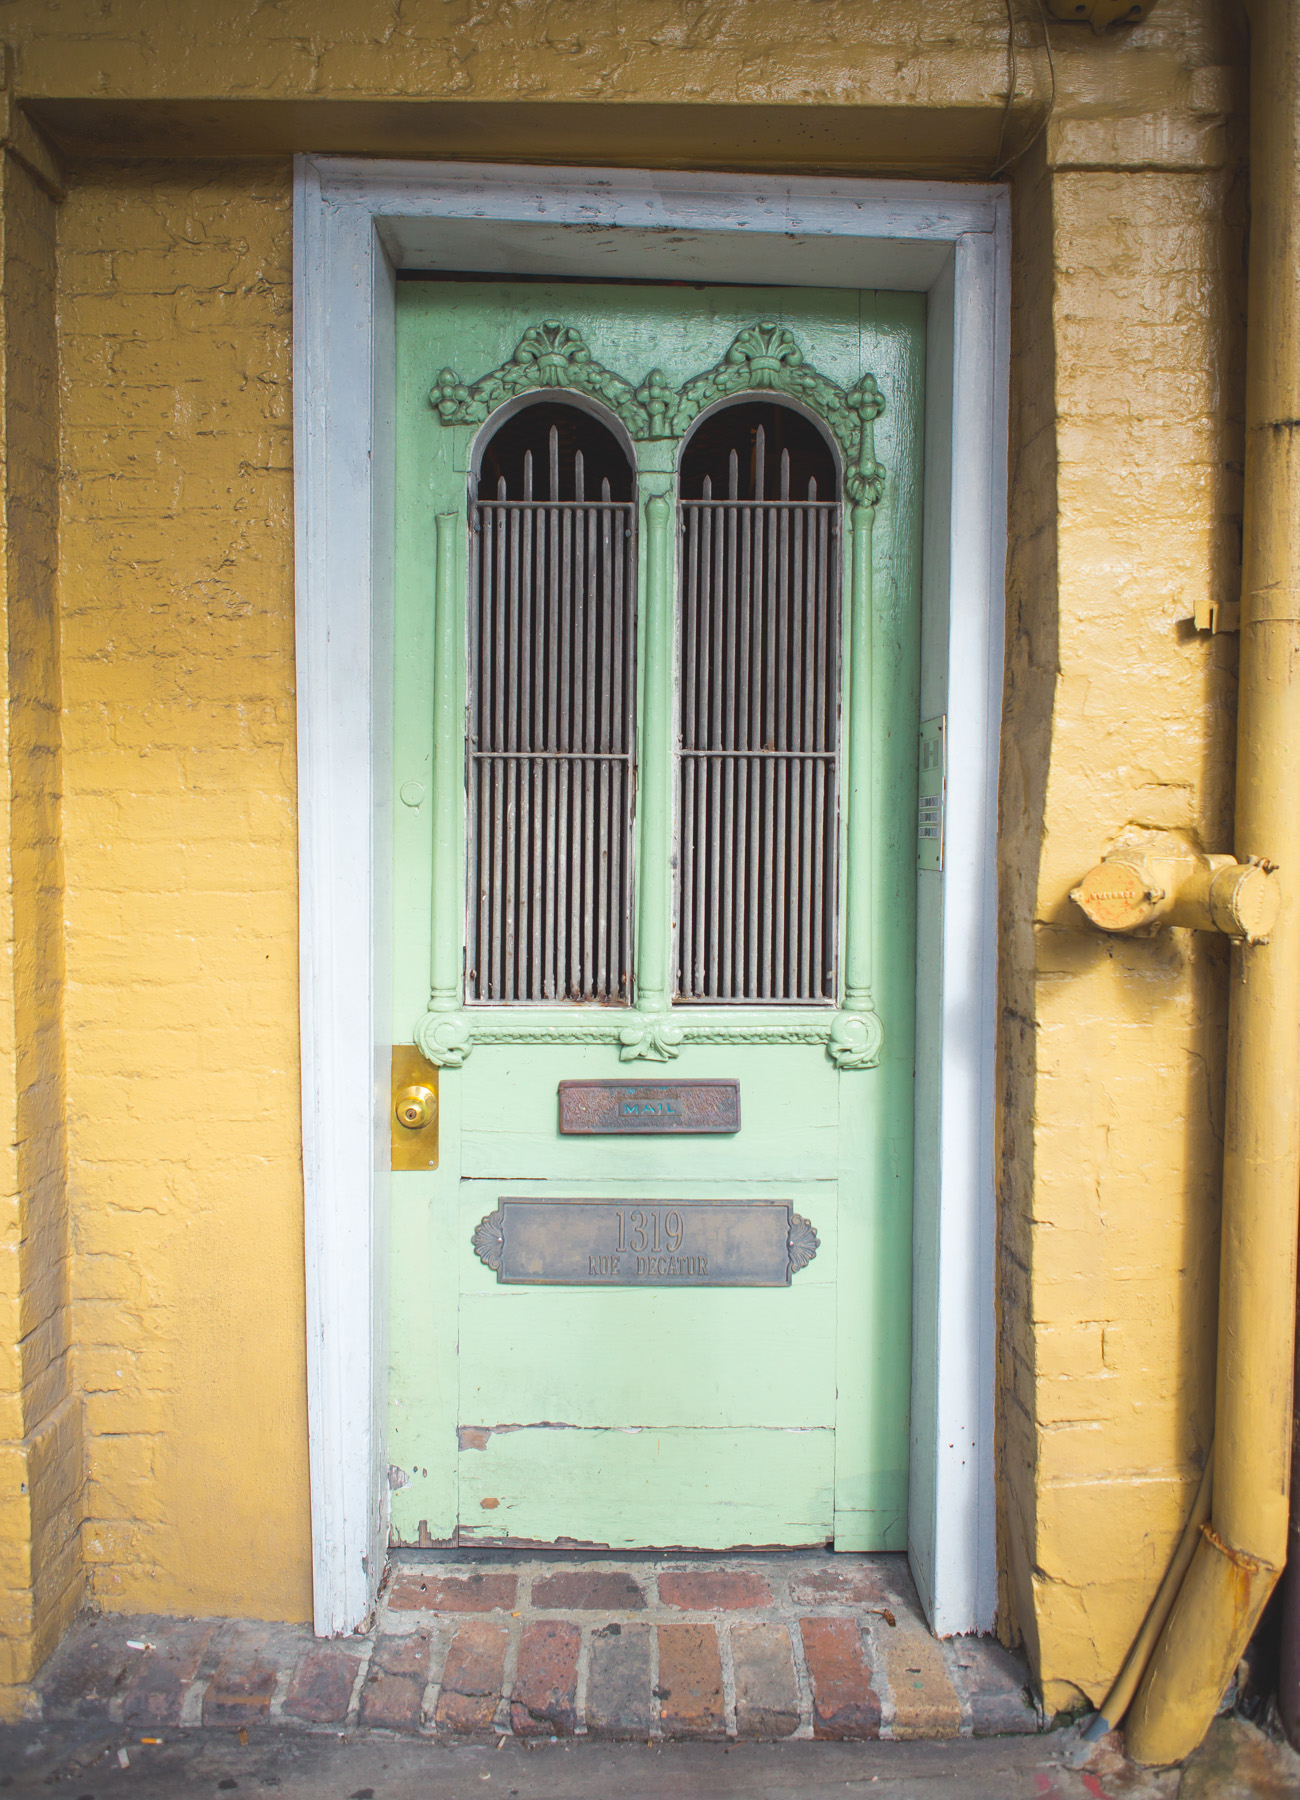 New Orleans photo journal